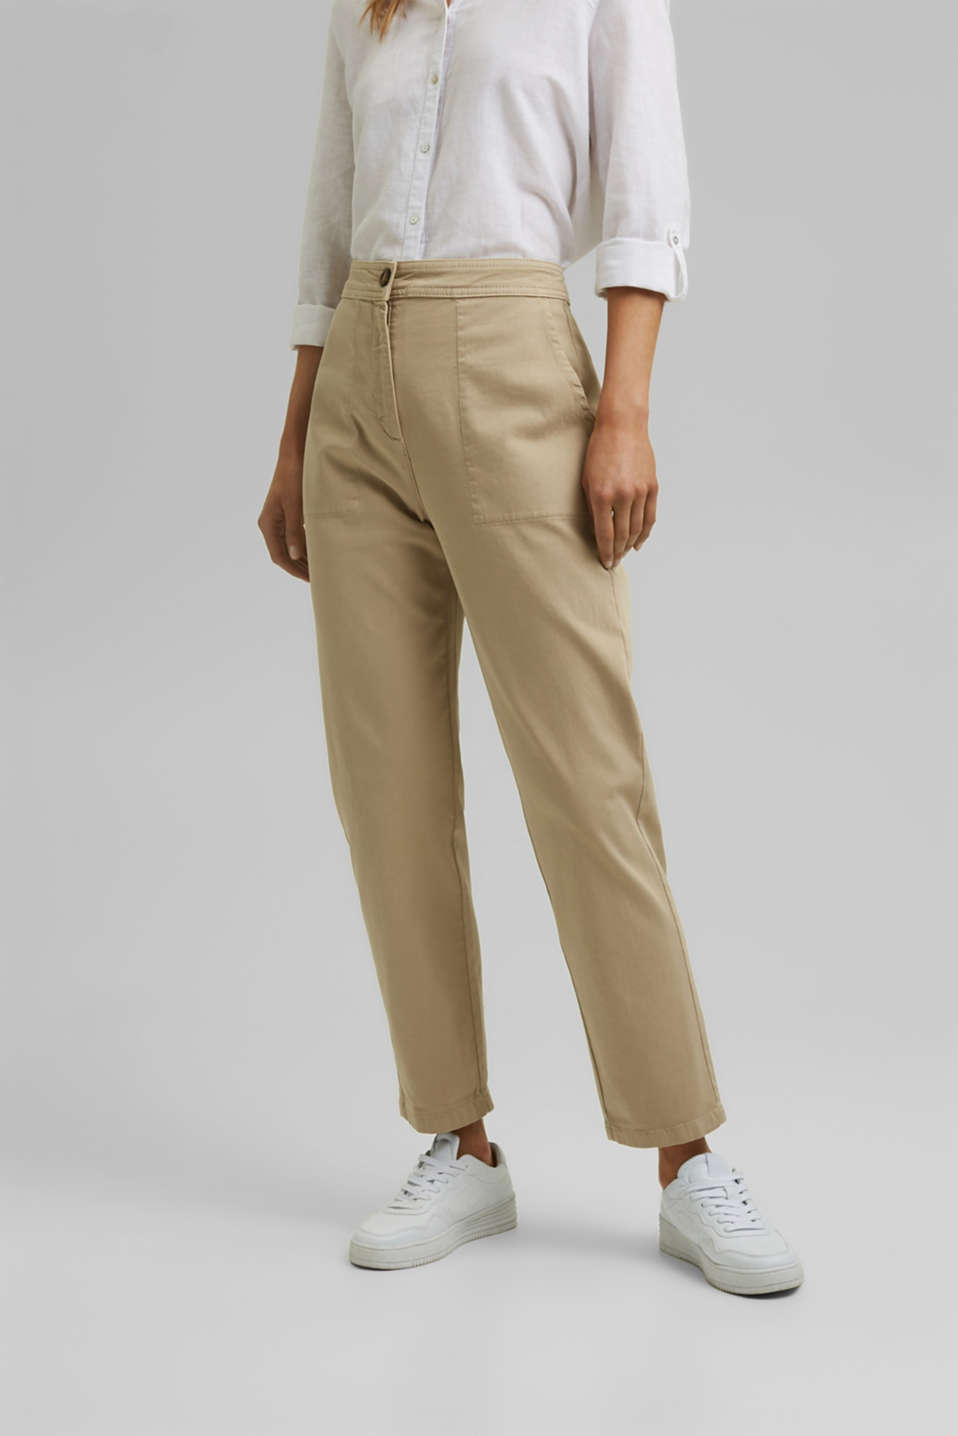 Esprit - High-rise, ankle-length trousers made of organic cotton